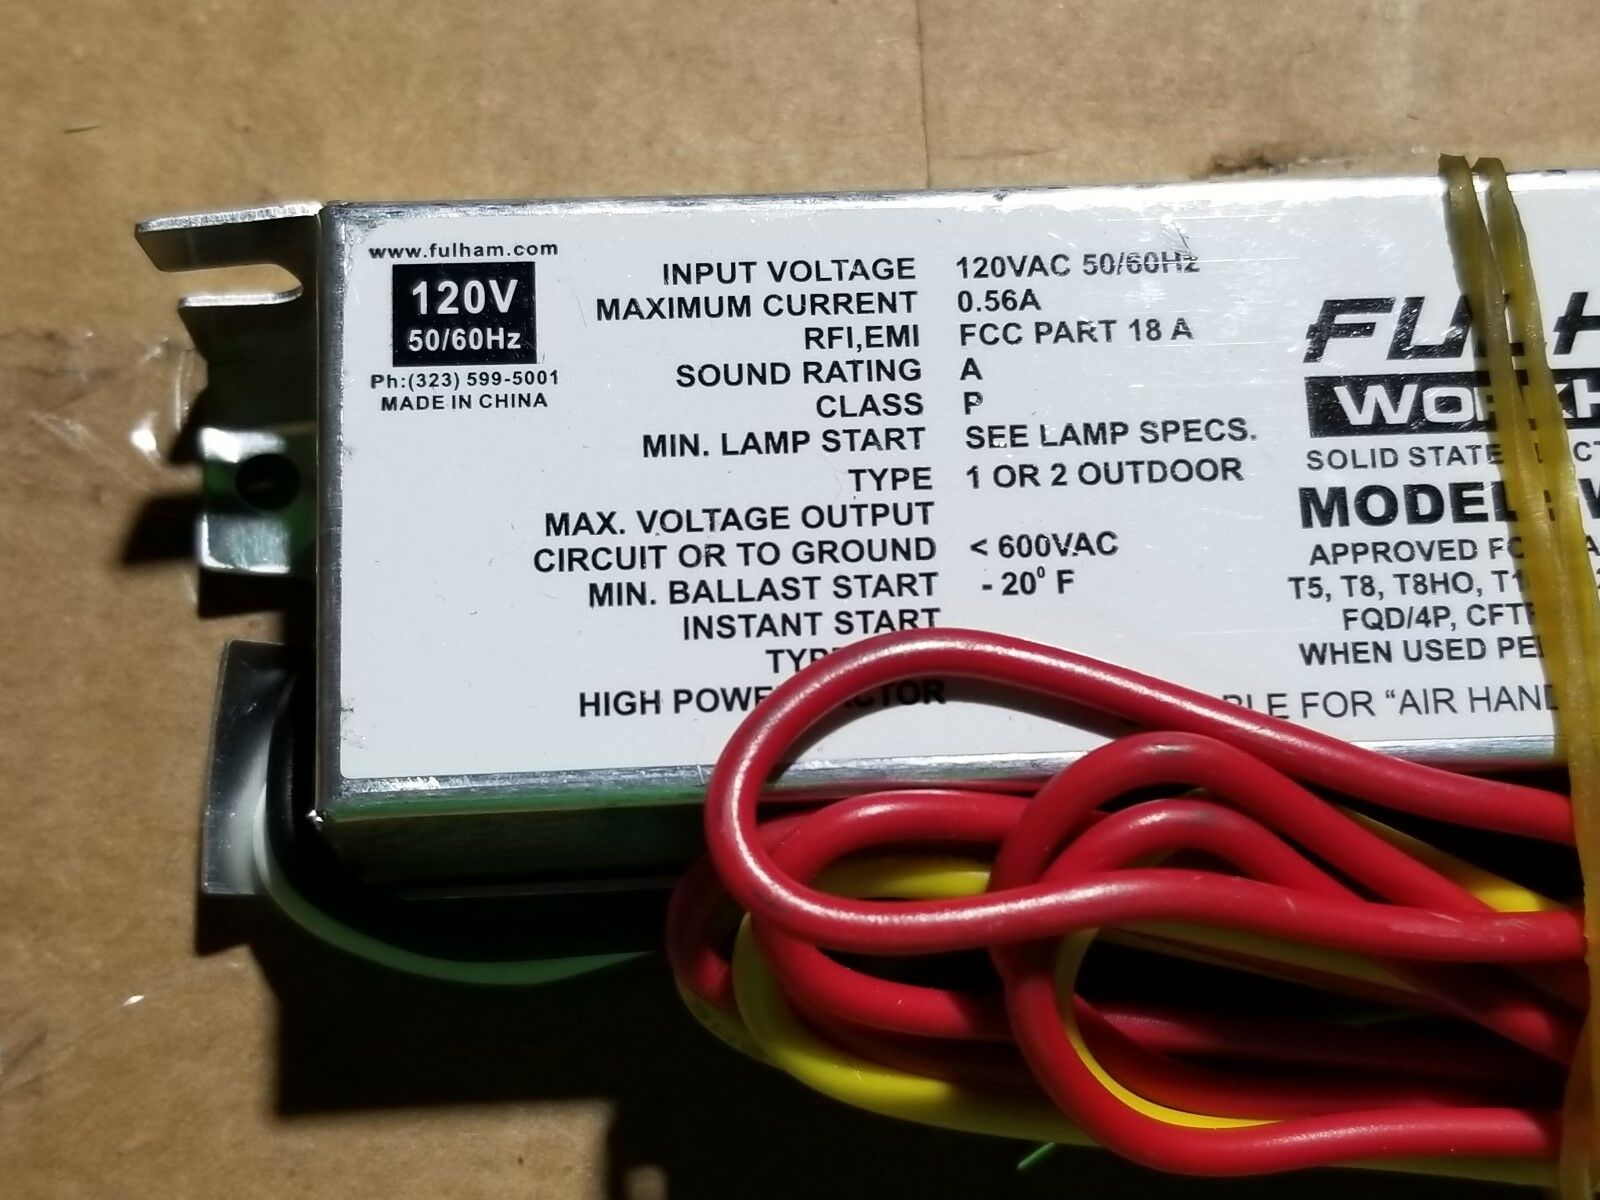 Fulham Wh3 120 L Workhorse F54t5 Adaptable Ballast Hpf Ebay Electronic Wiring Diagram Norton Secured Powered By Verisign